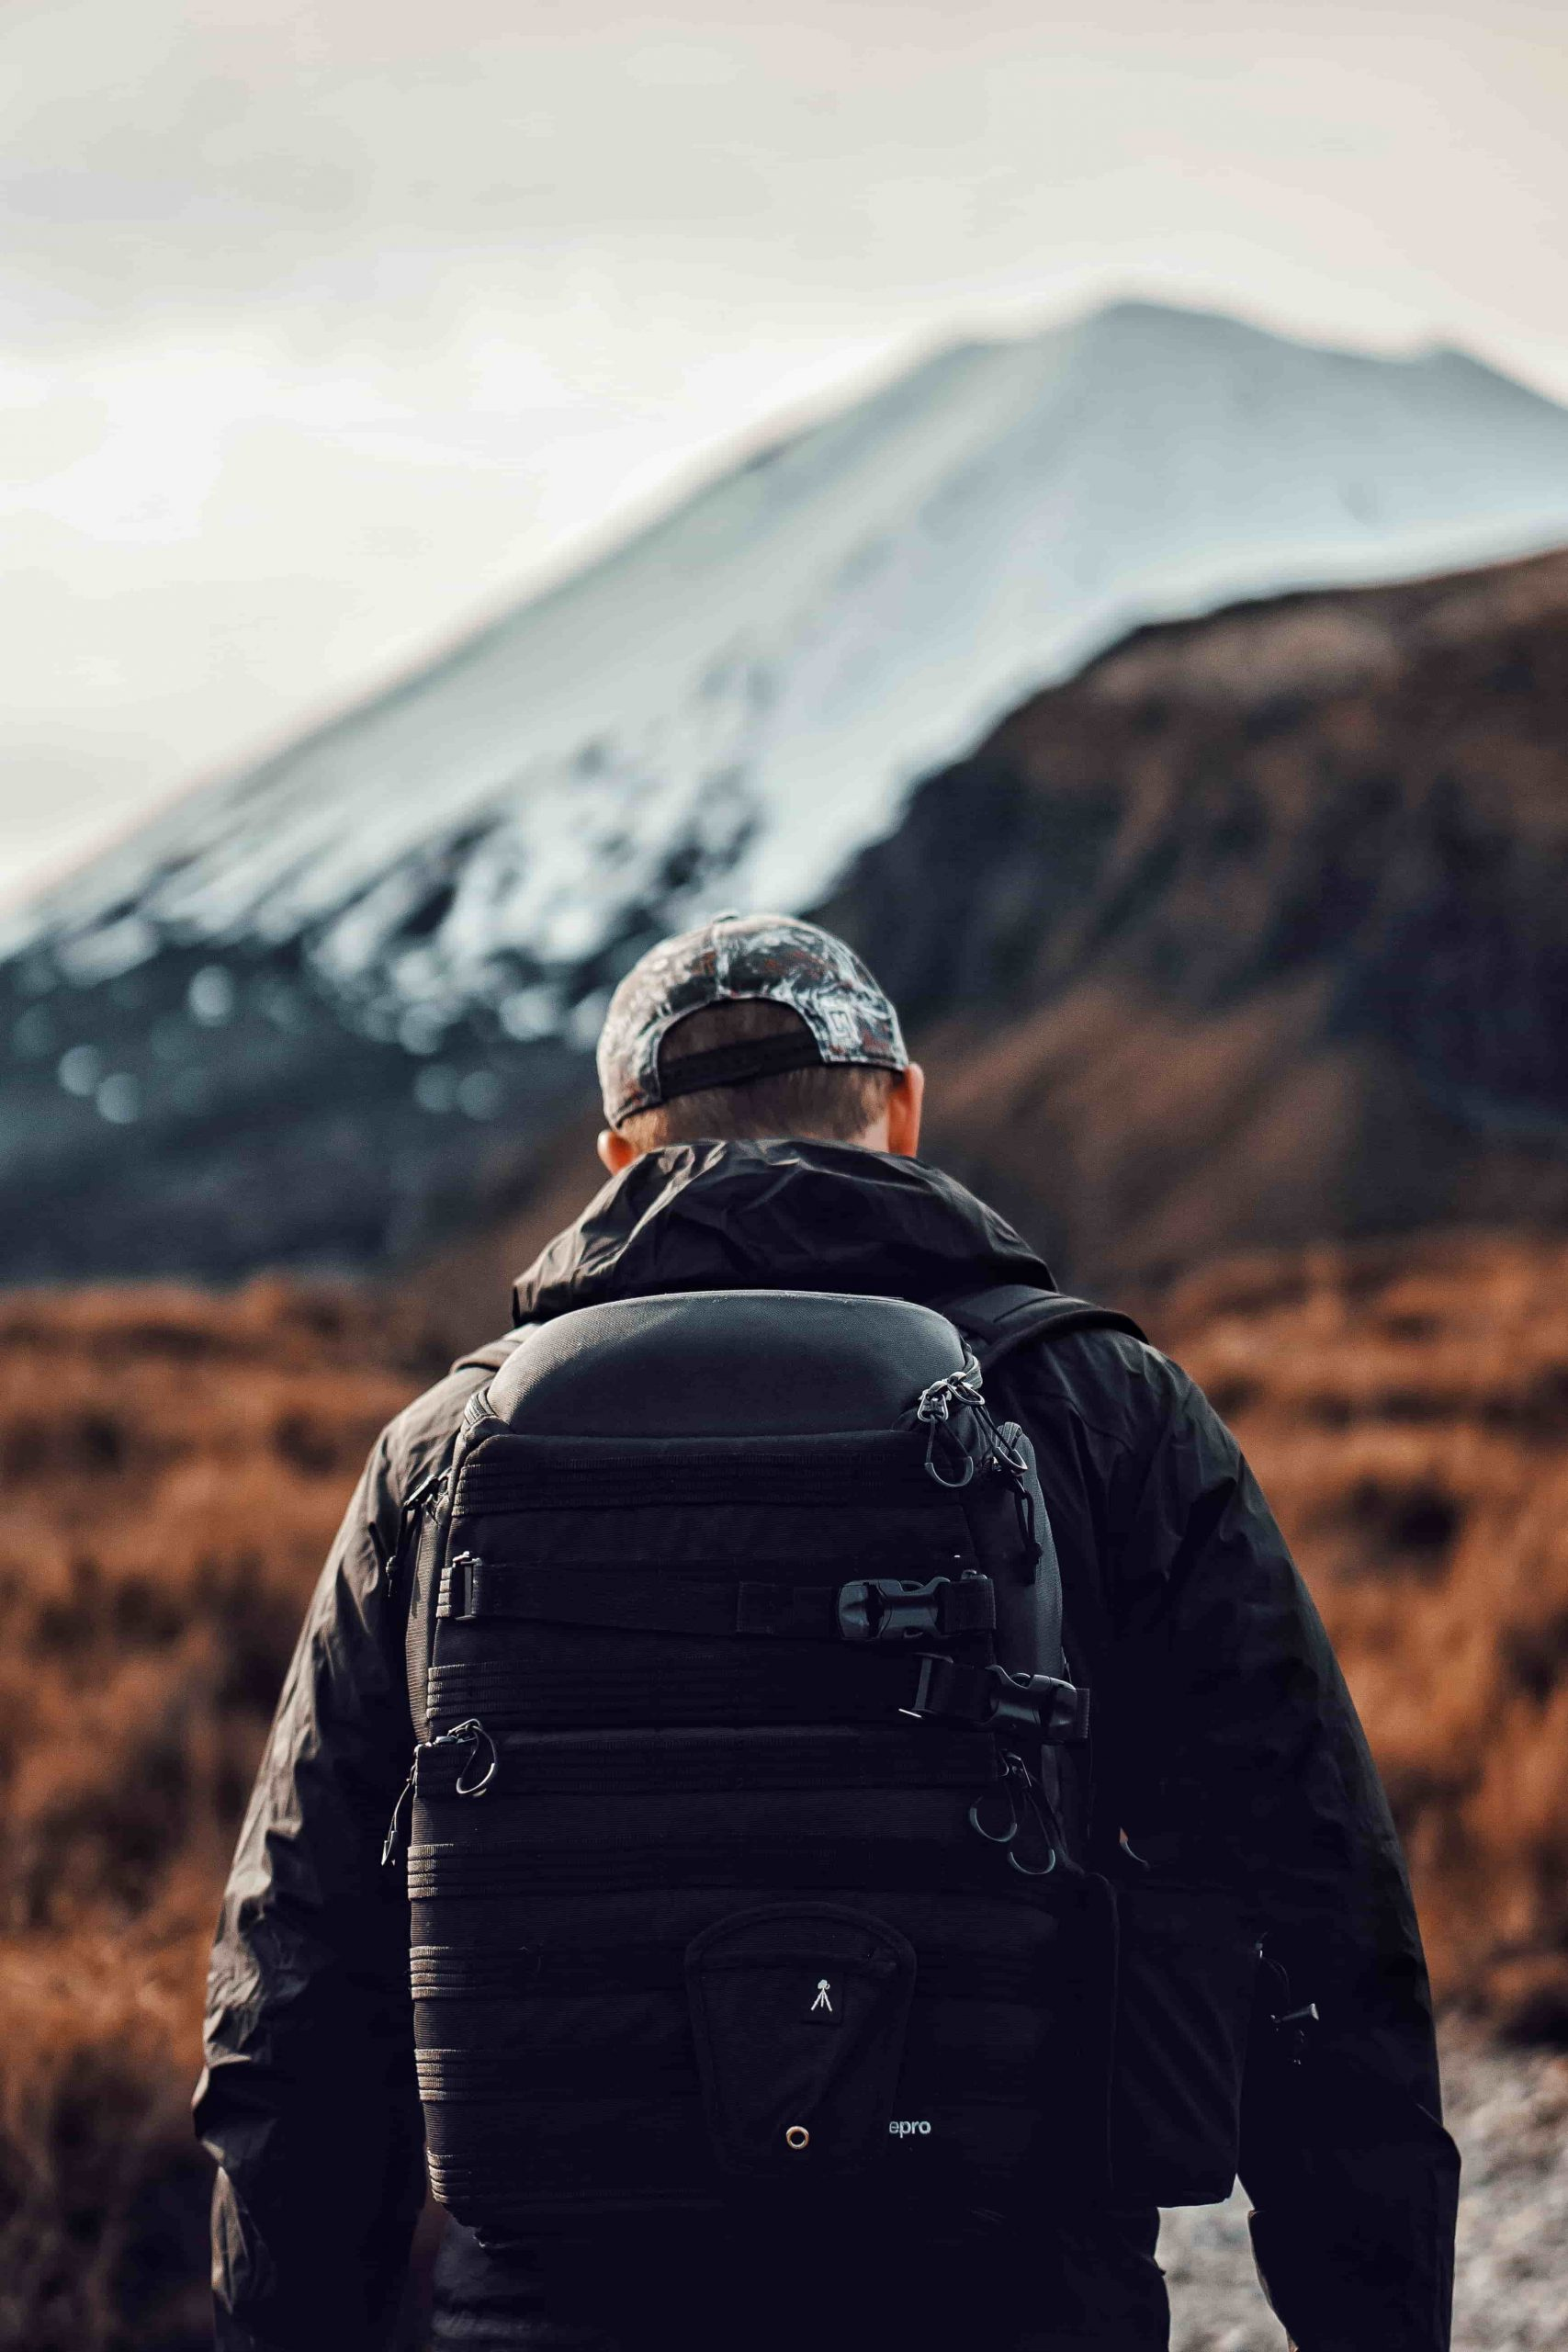 outerwear-outdoor-apparel-clothing-footwear